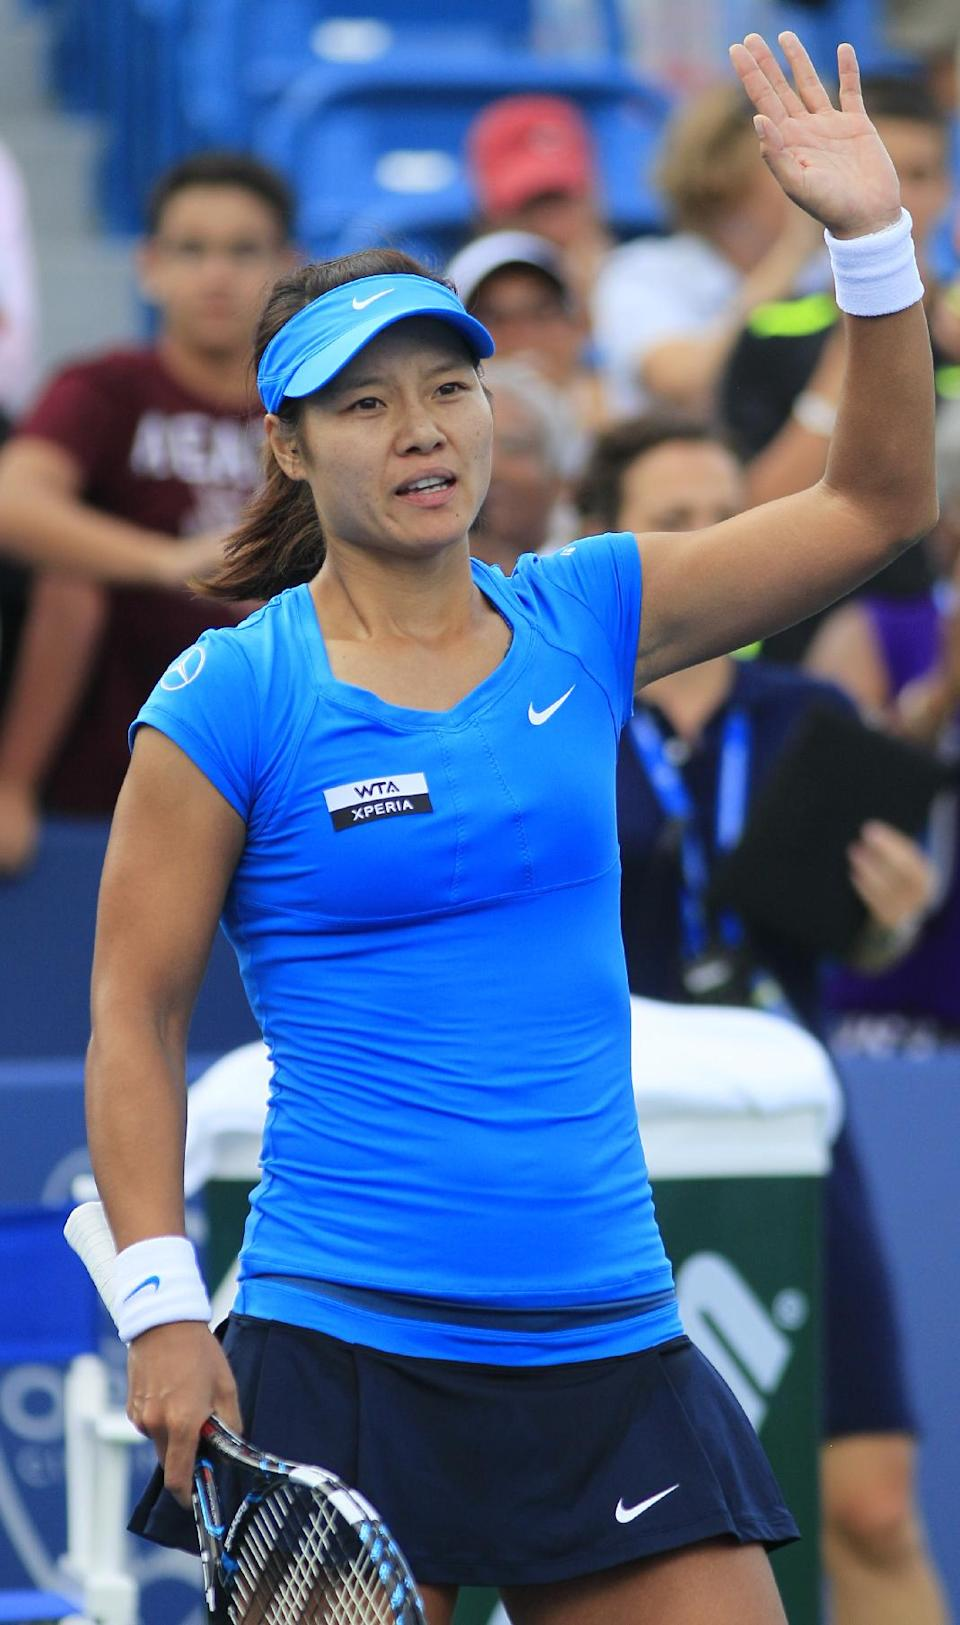 Li Na, of China, acknowledges the crowd after defeating Angelique Kerber, of Germany, 1-6, 6-3, 6-1, in the women's final at the Western & Southern Open tennis tournament, Sunday, Aug. 19, 2012, in Mason, Ohio. (AP Photo/Al Behrman)